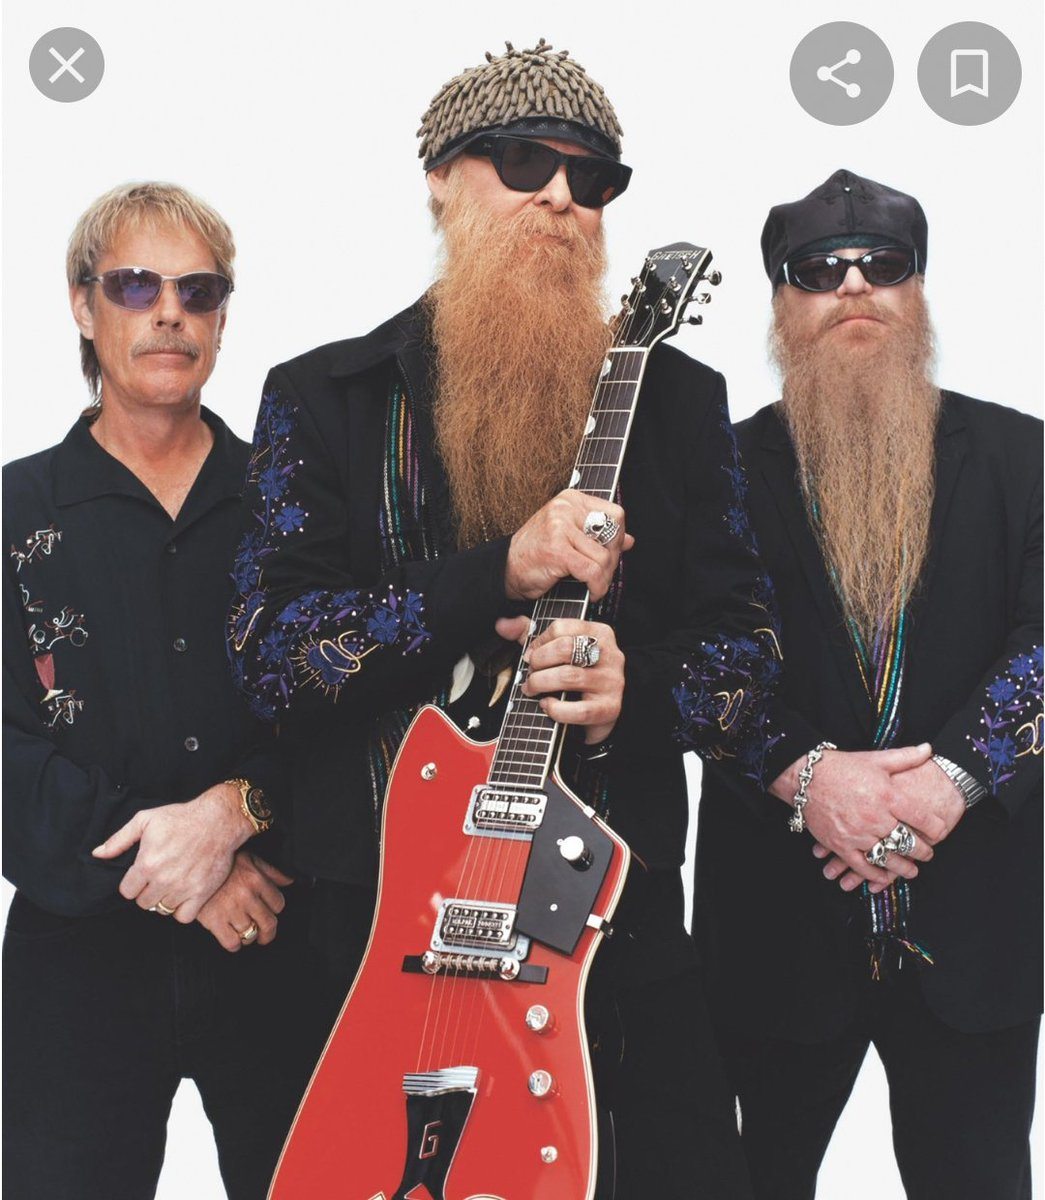 Speaking of David Lee Roth and Van Halen if you dont know who ZZ Top is you need your ass beat! <br>http://pic.twitter.com/d08HIztO0o